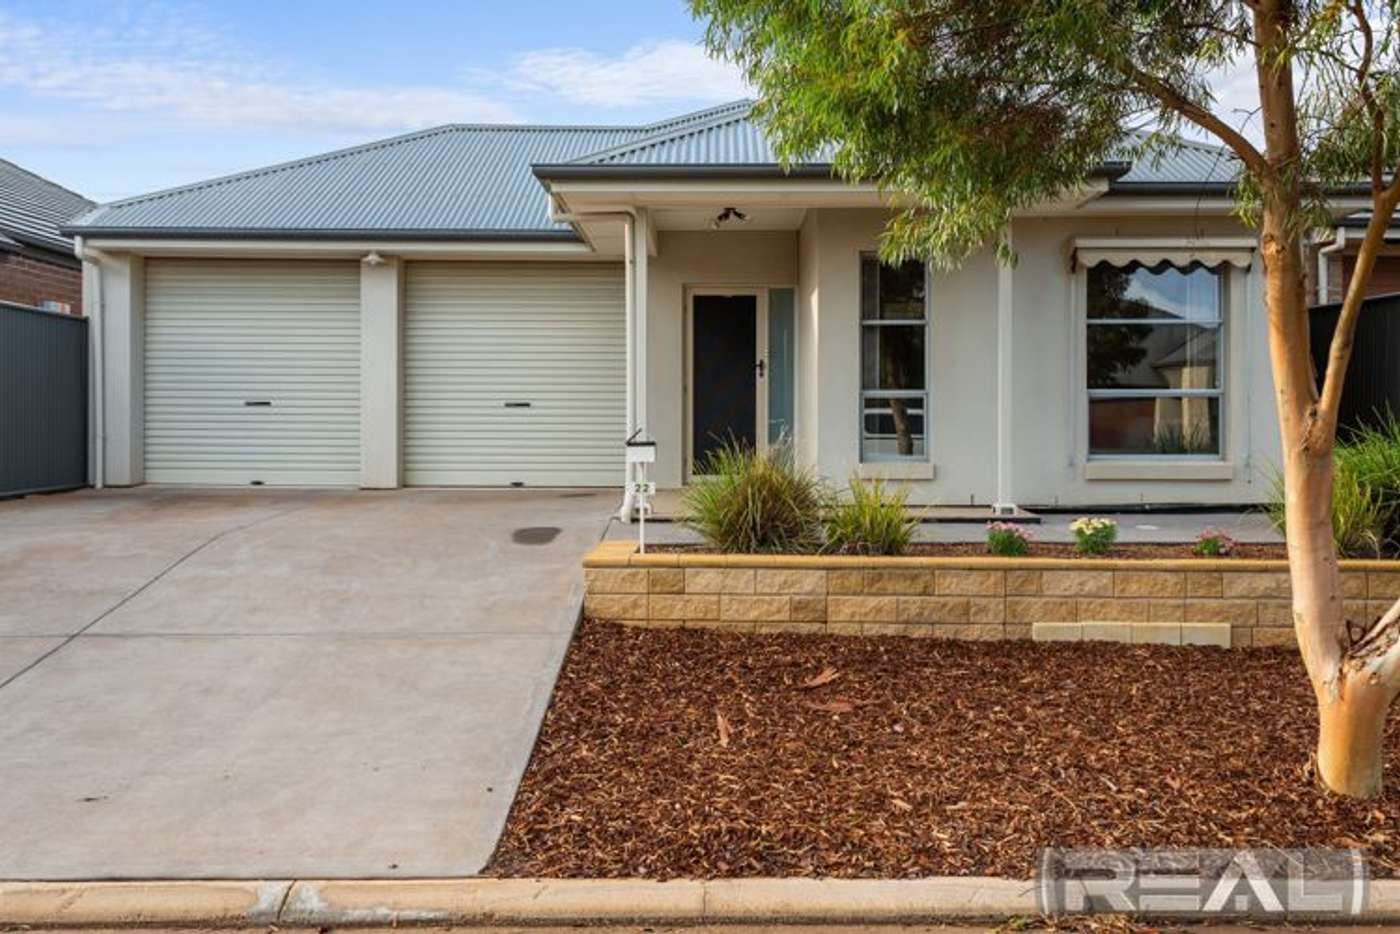 Main view of Homely house listing, 22 Salmon Gum Crescent, Blakeview SA 5114